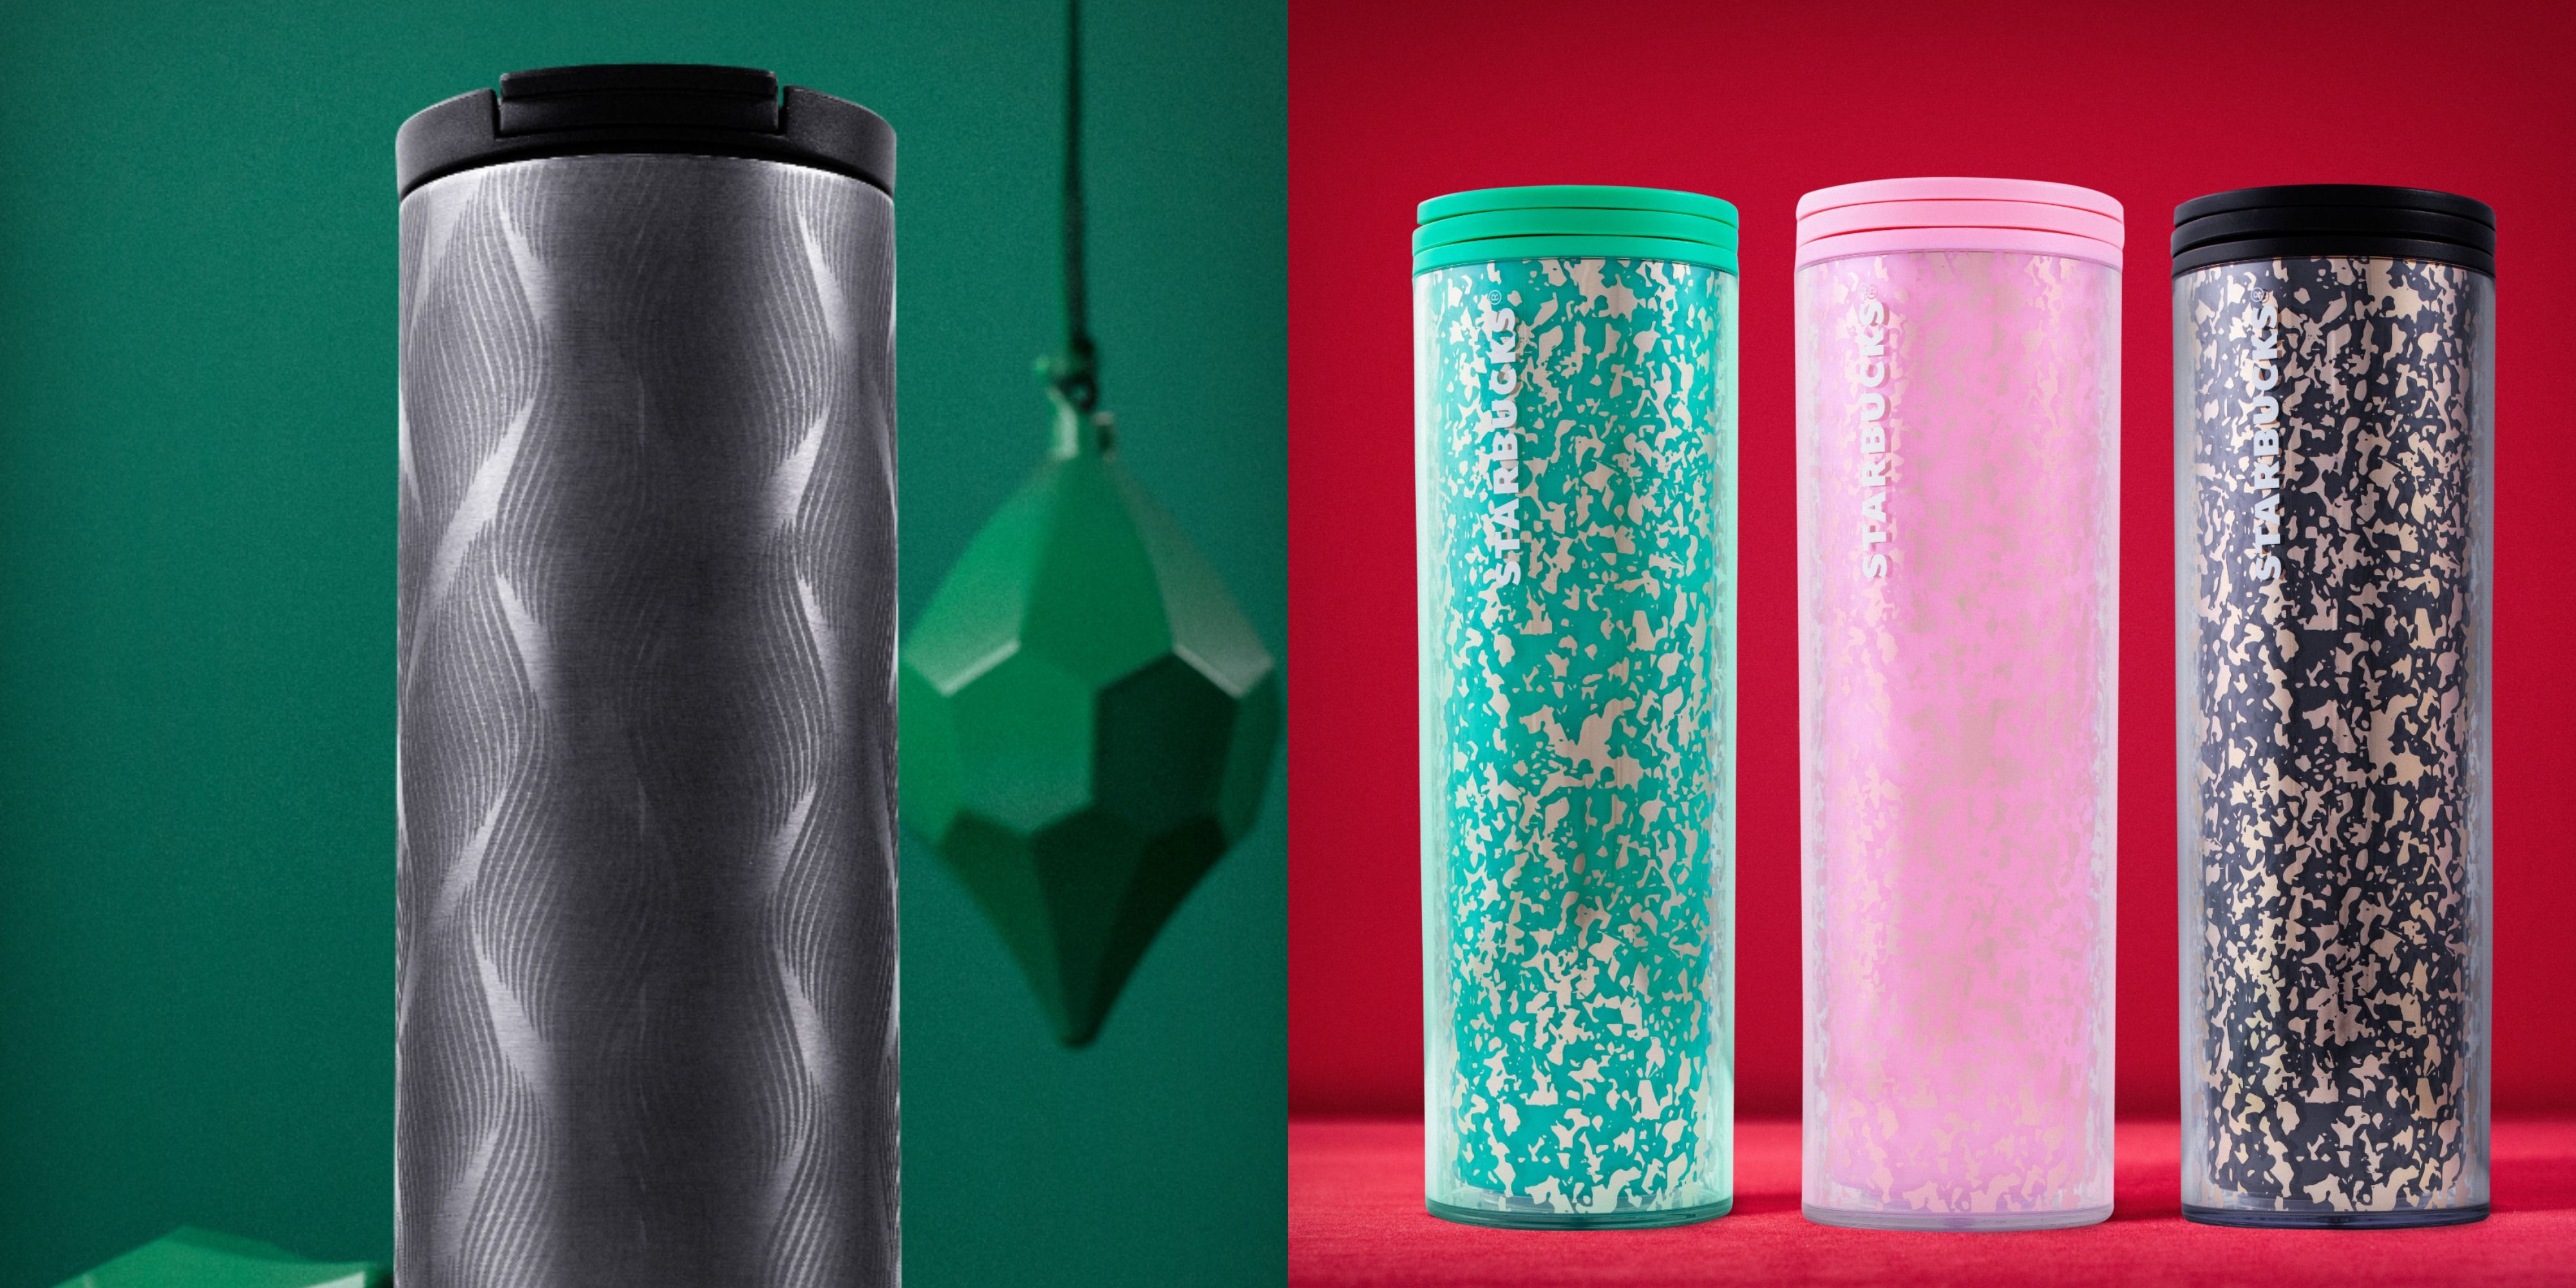 Starbucks Brought Back Its Black Friday Deal On A Tumbler That Gets You Free Coffee For A Month